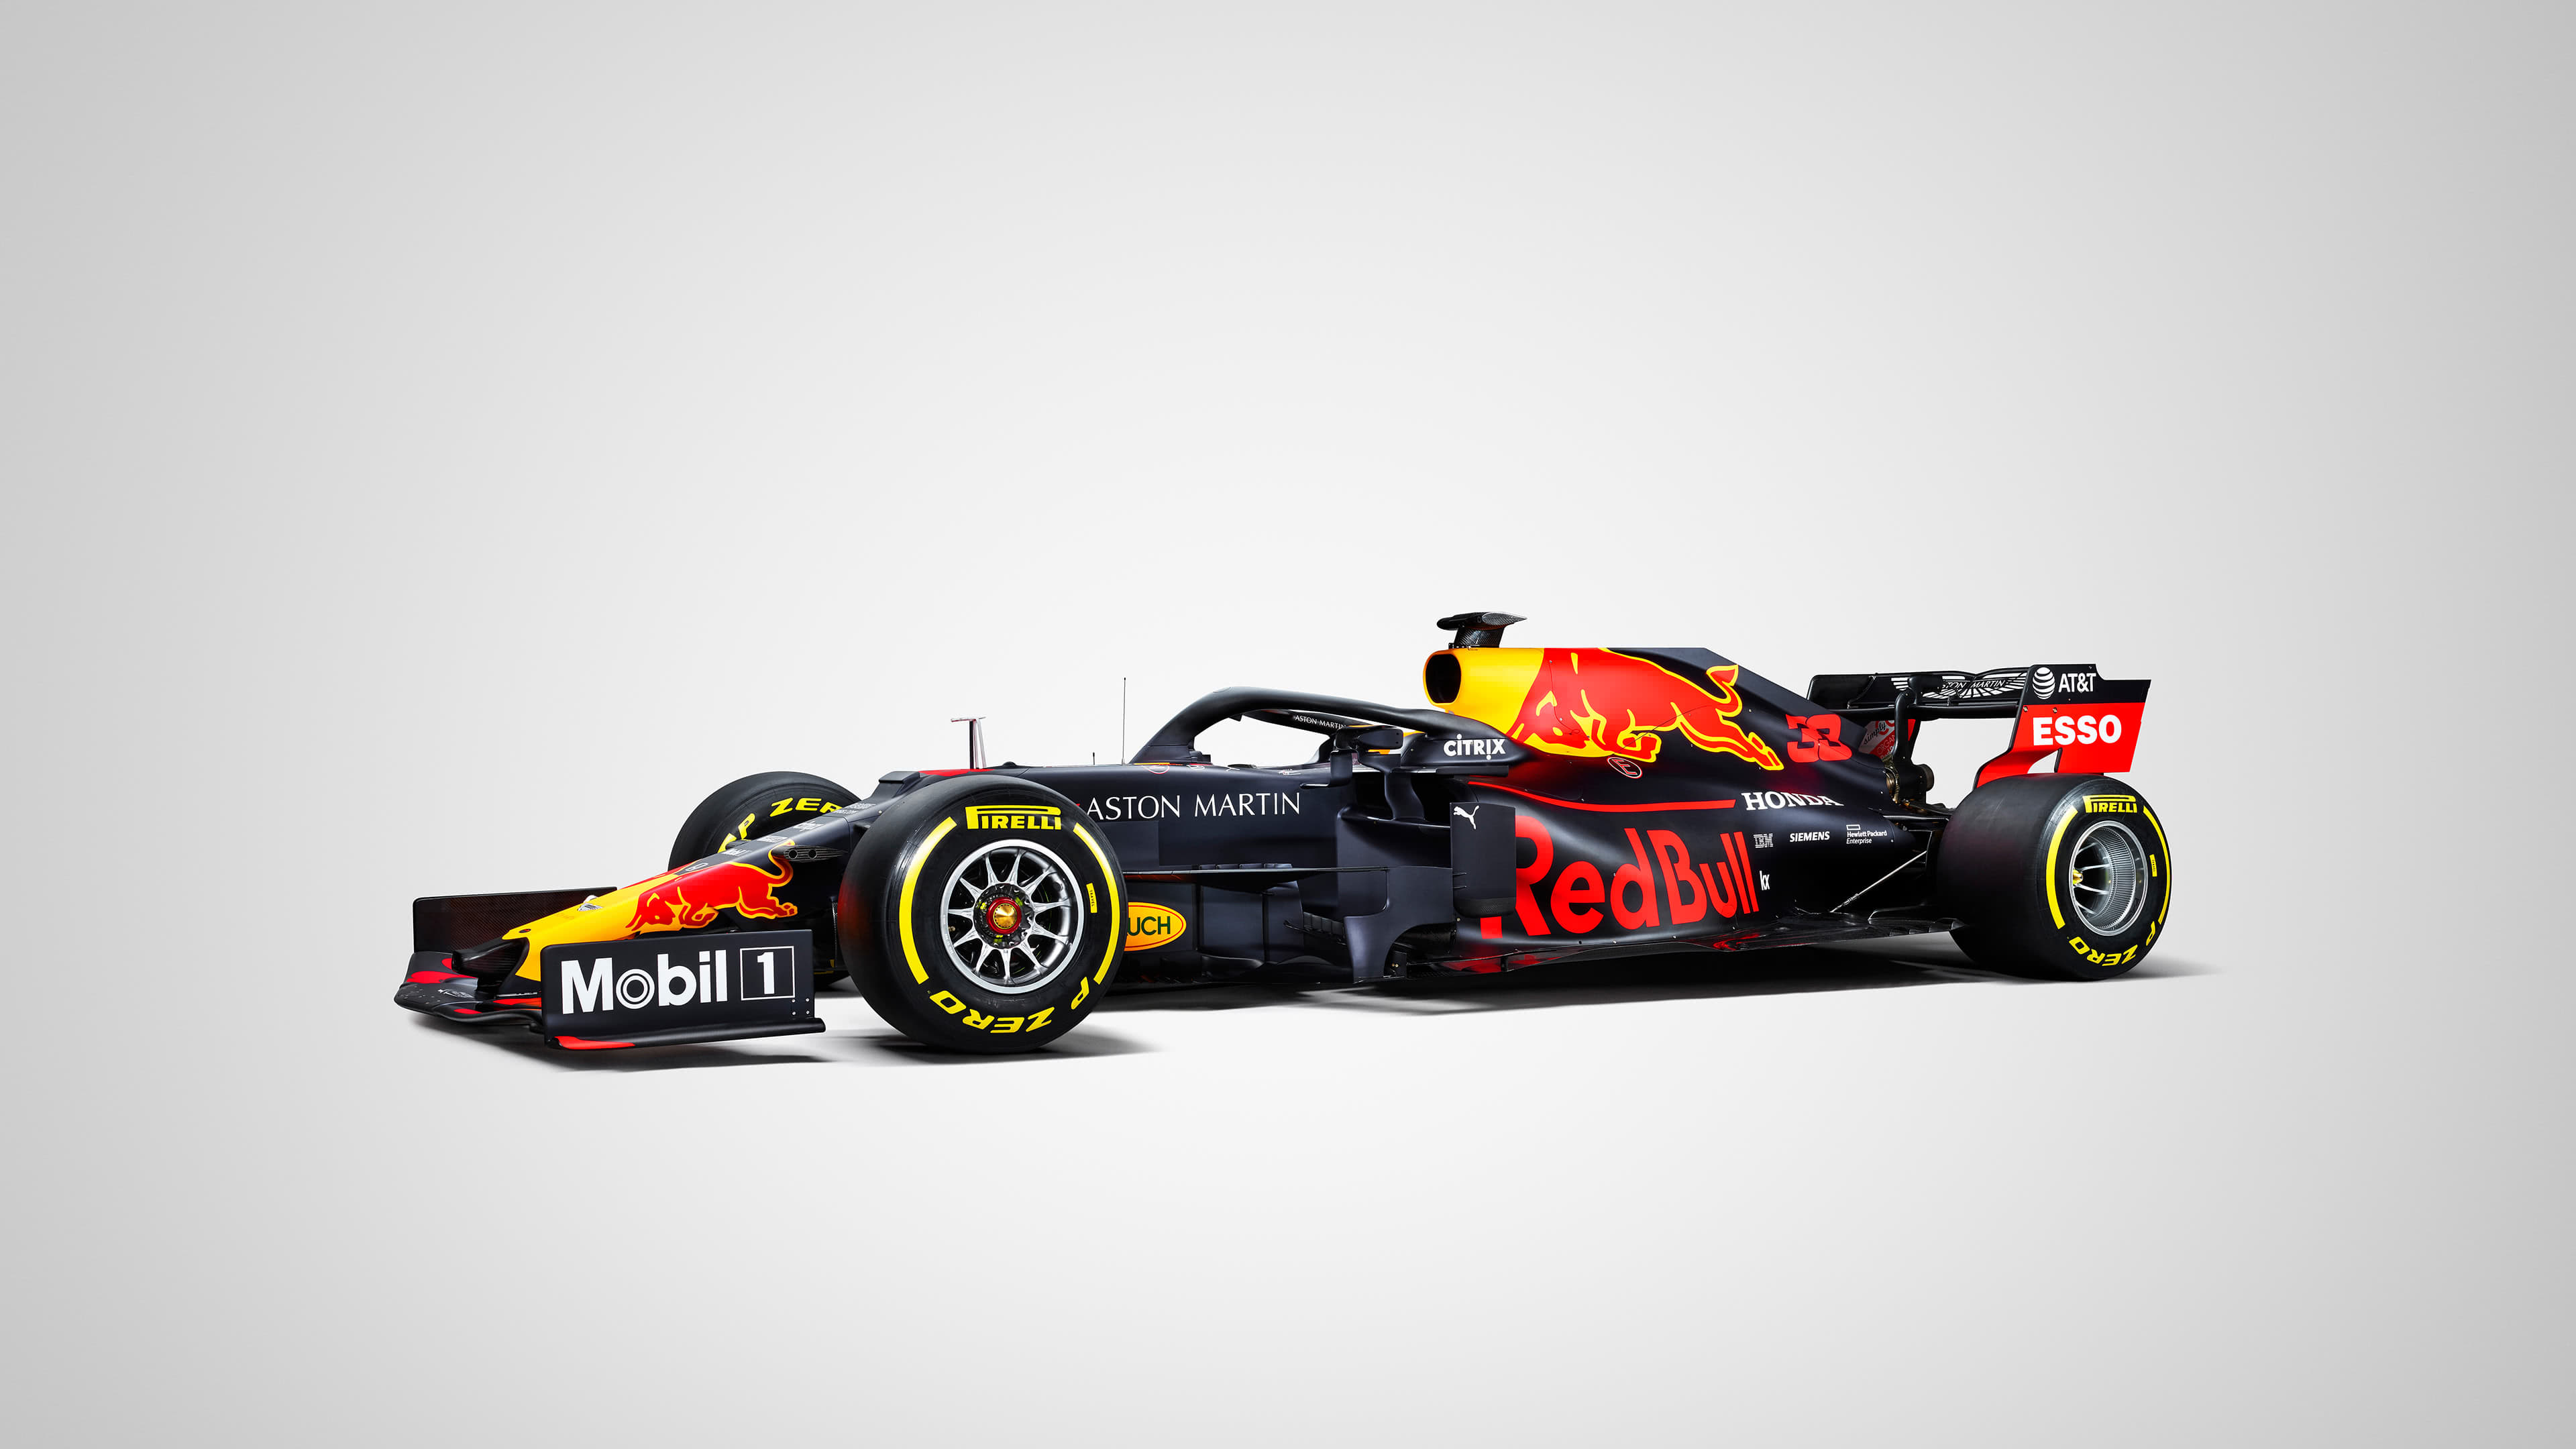 red bull rb15 f1 uhd 4k wallpaper